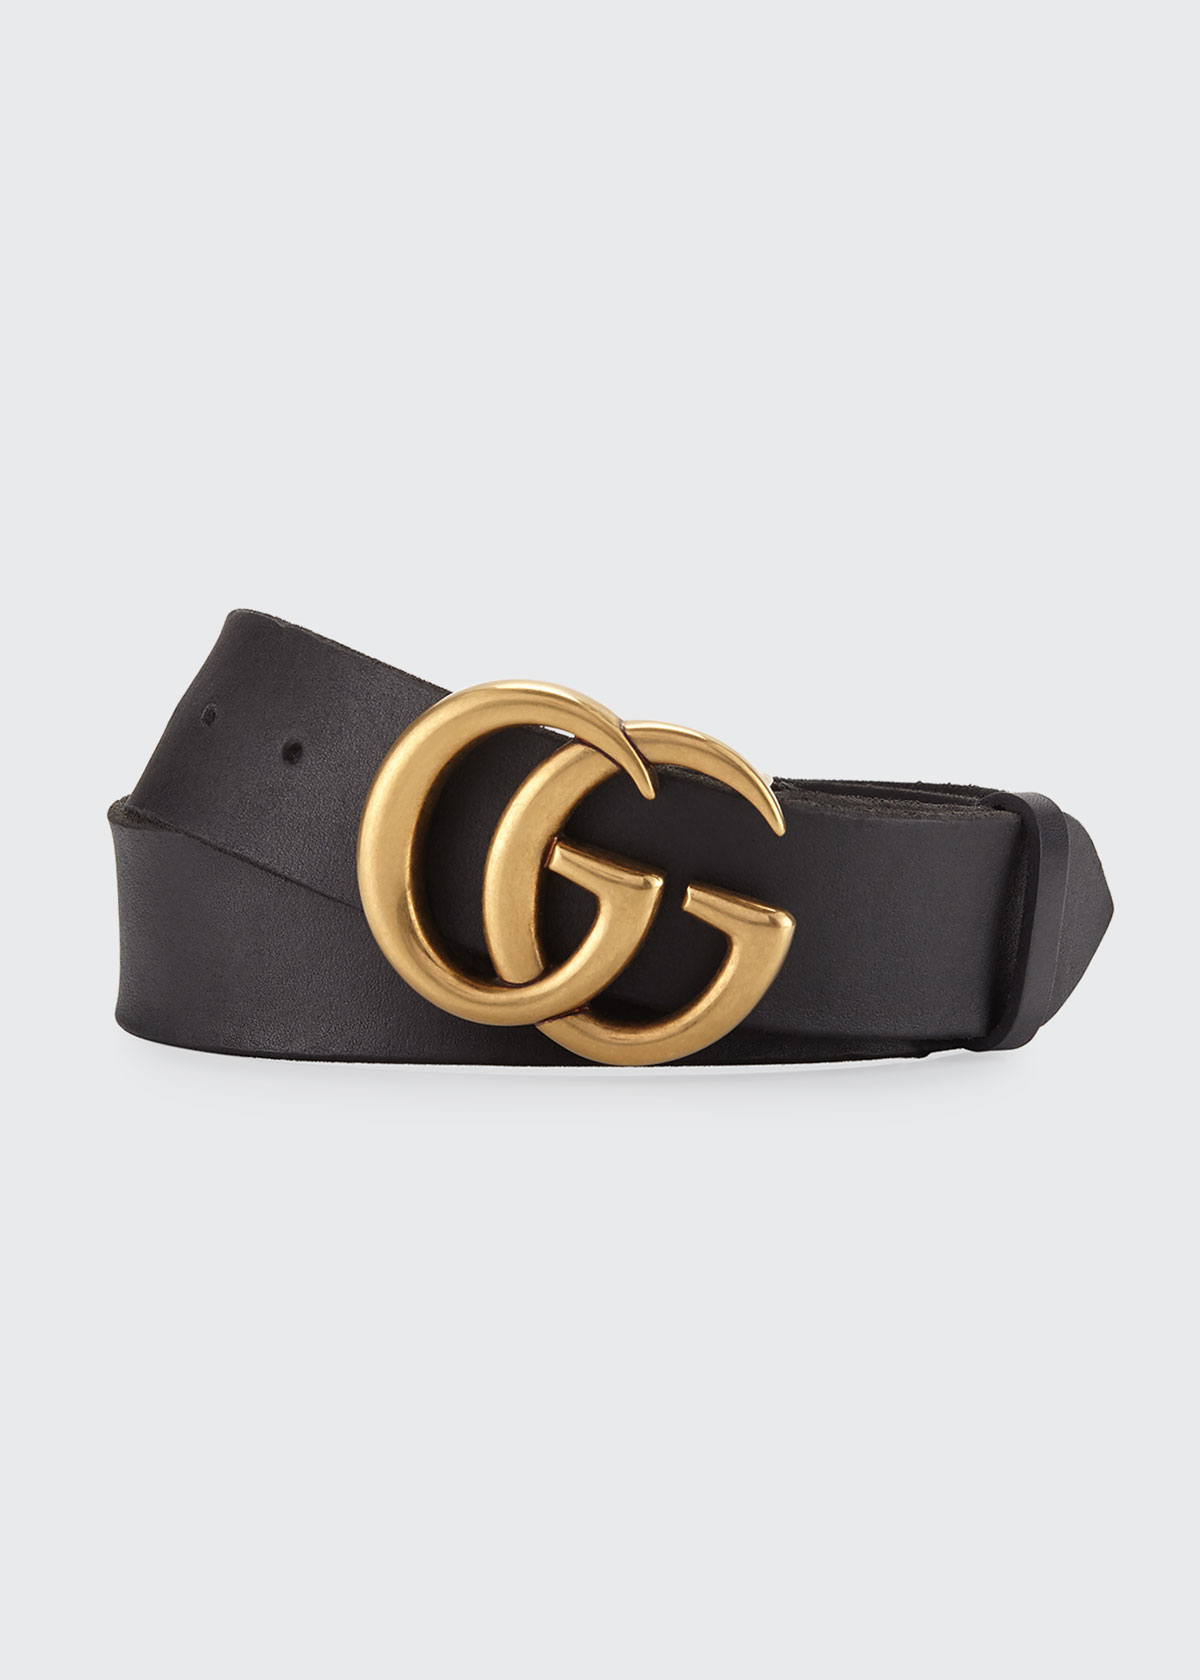 21ccfdffc5c58 Gucci Men s Leather Belt with Double-G Buckle